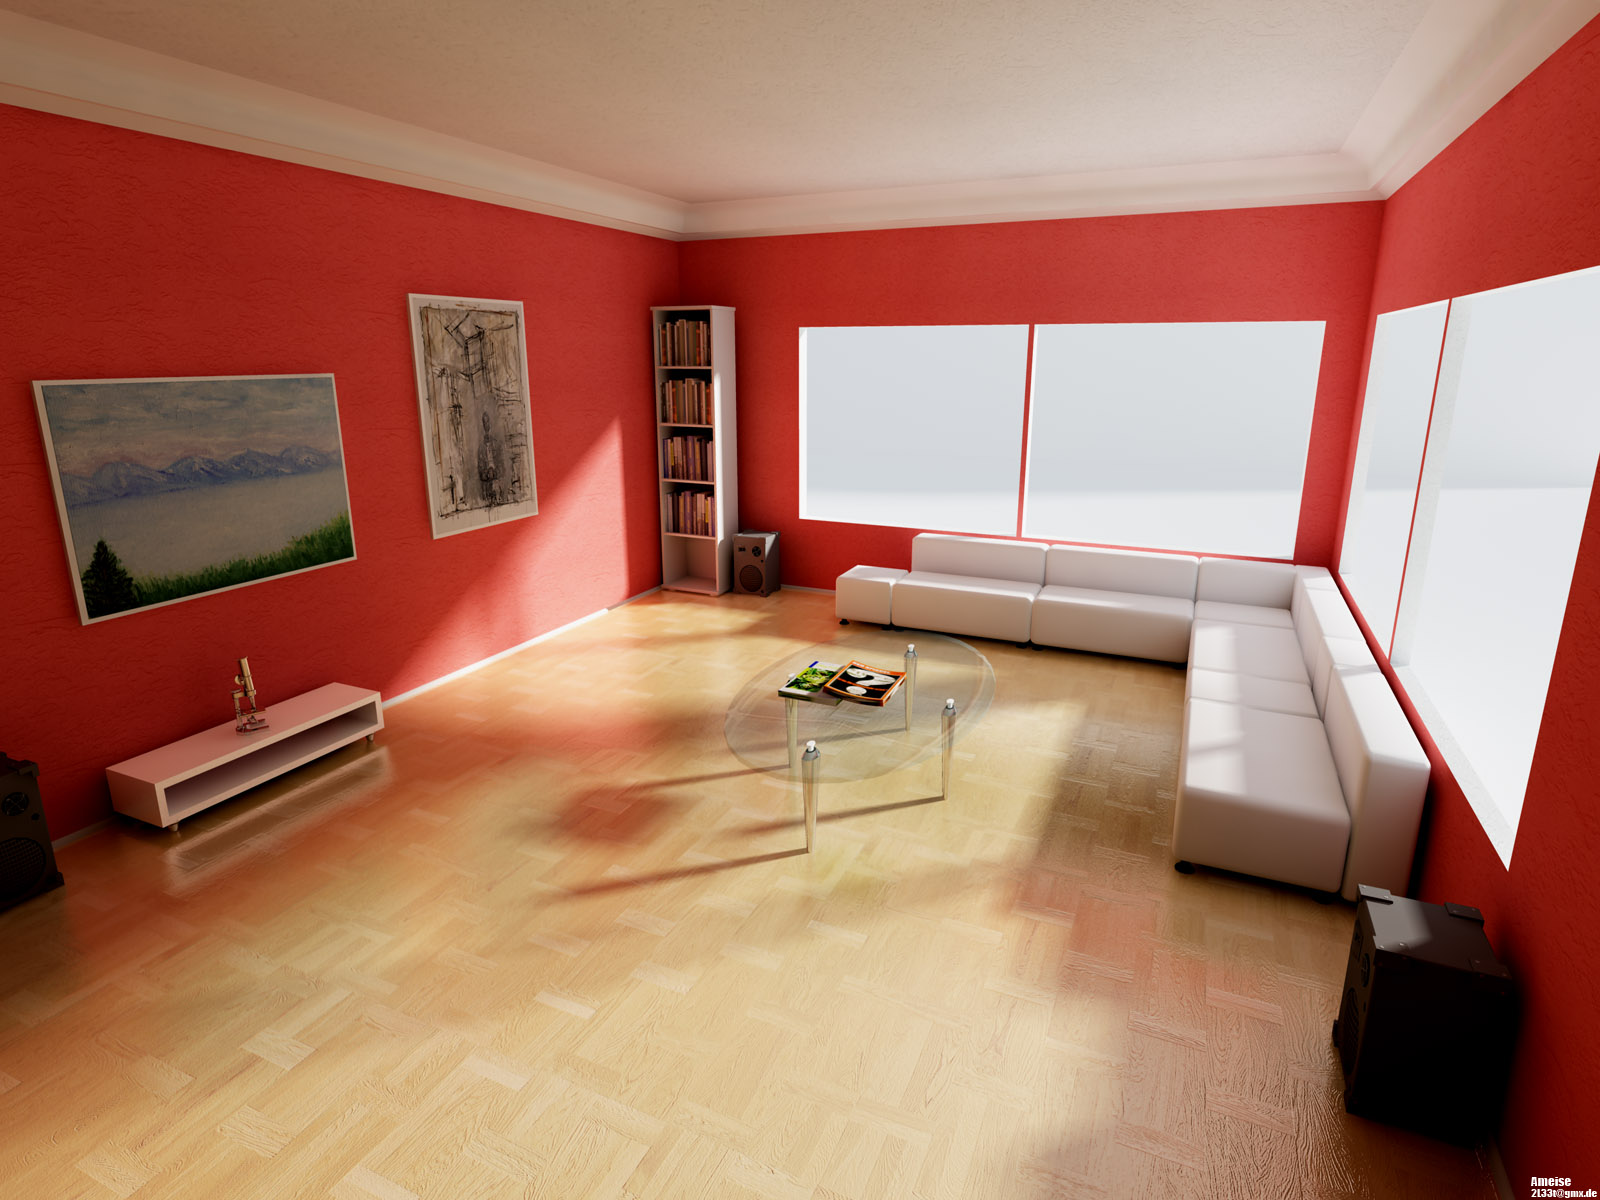 Red wall livingroom interior interior design ideas for Red wallpaper designs for living room